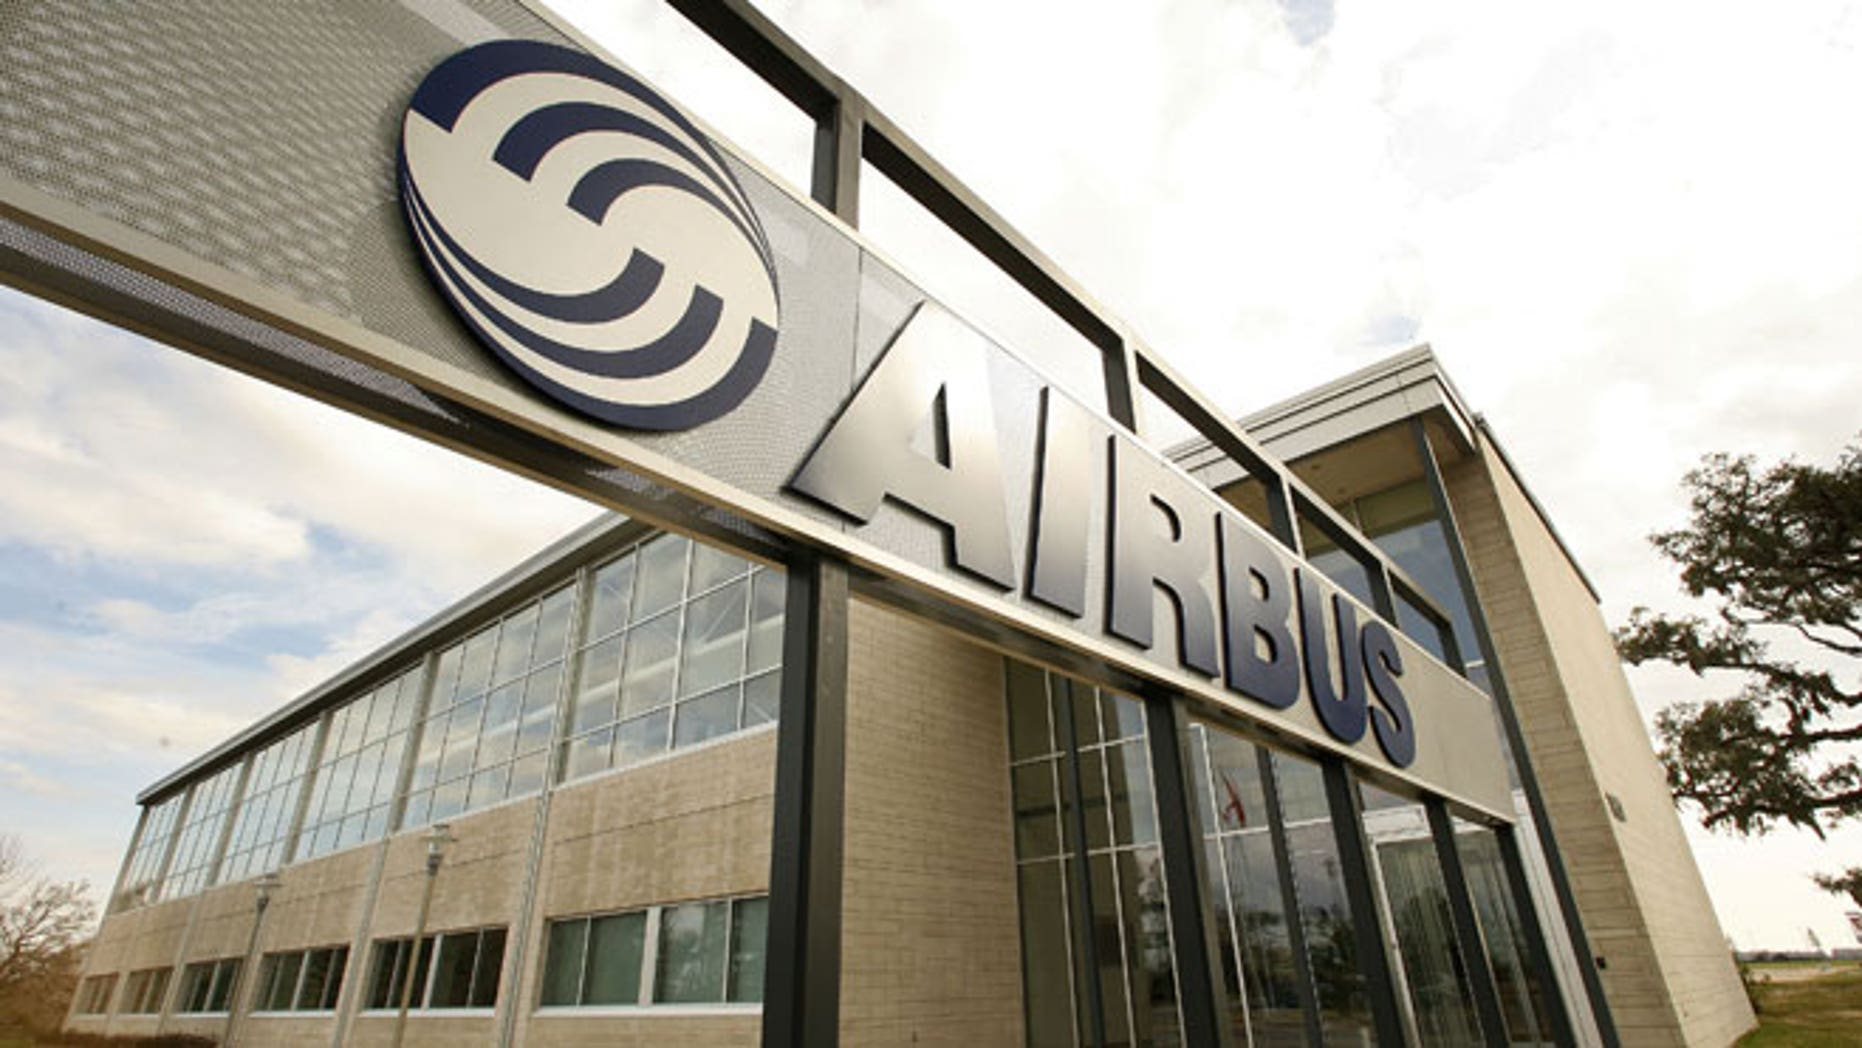 This Feb. 29, 2008 file photo shows the Airbus North America Engineering Center in Mobile, Ala. European plane maker Airbus intends to build its first U.S. plant in Mobile, Ala., a person with knowledge of its plans told The Associated Press.